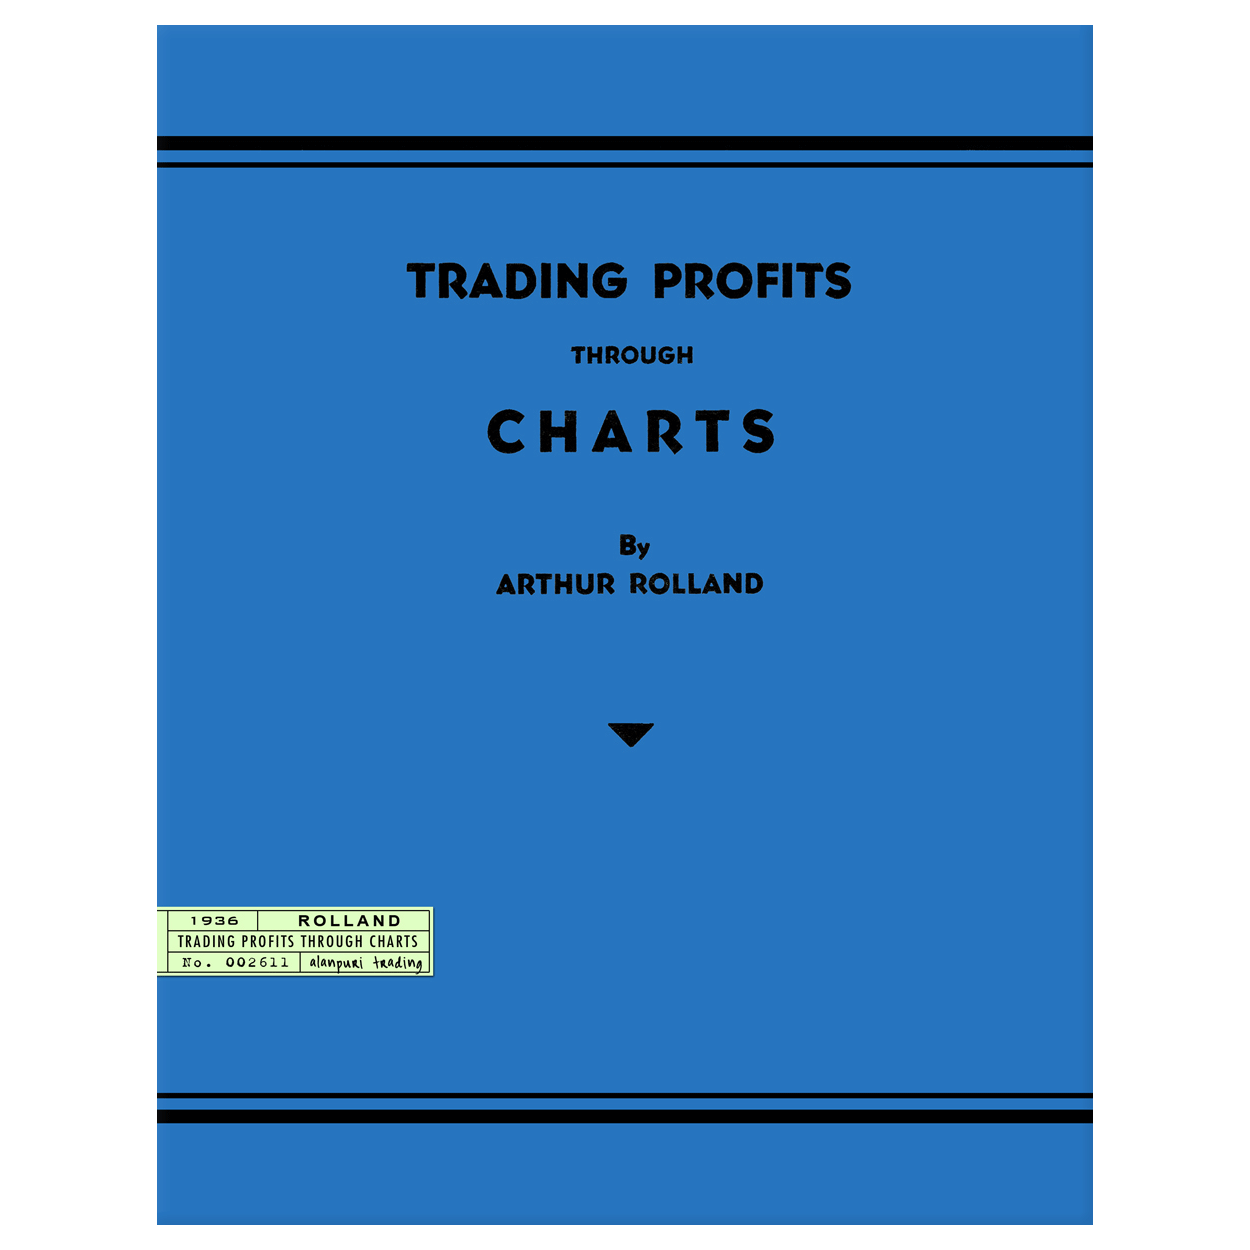 TTrading Profits Through Charts by Arthur Rolland